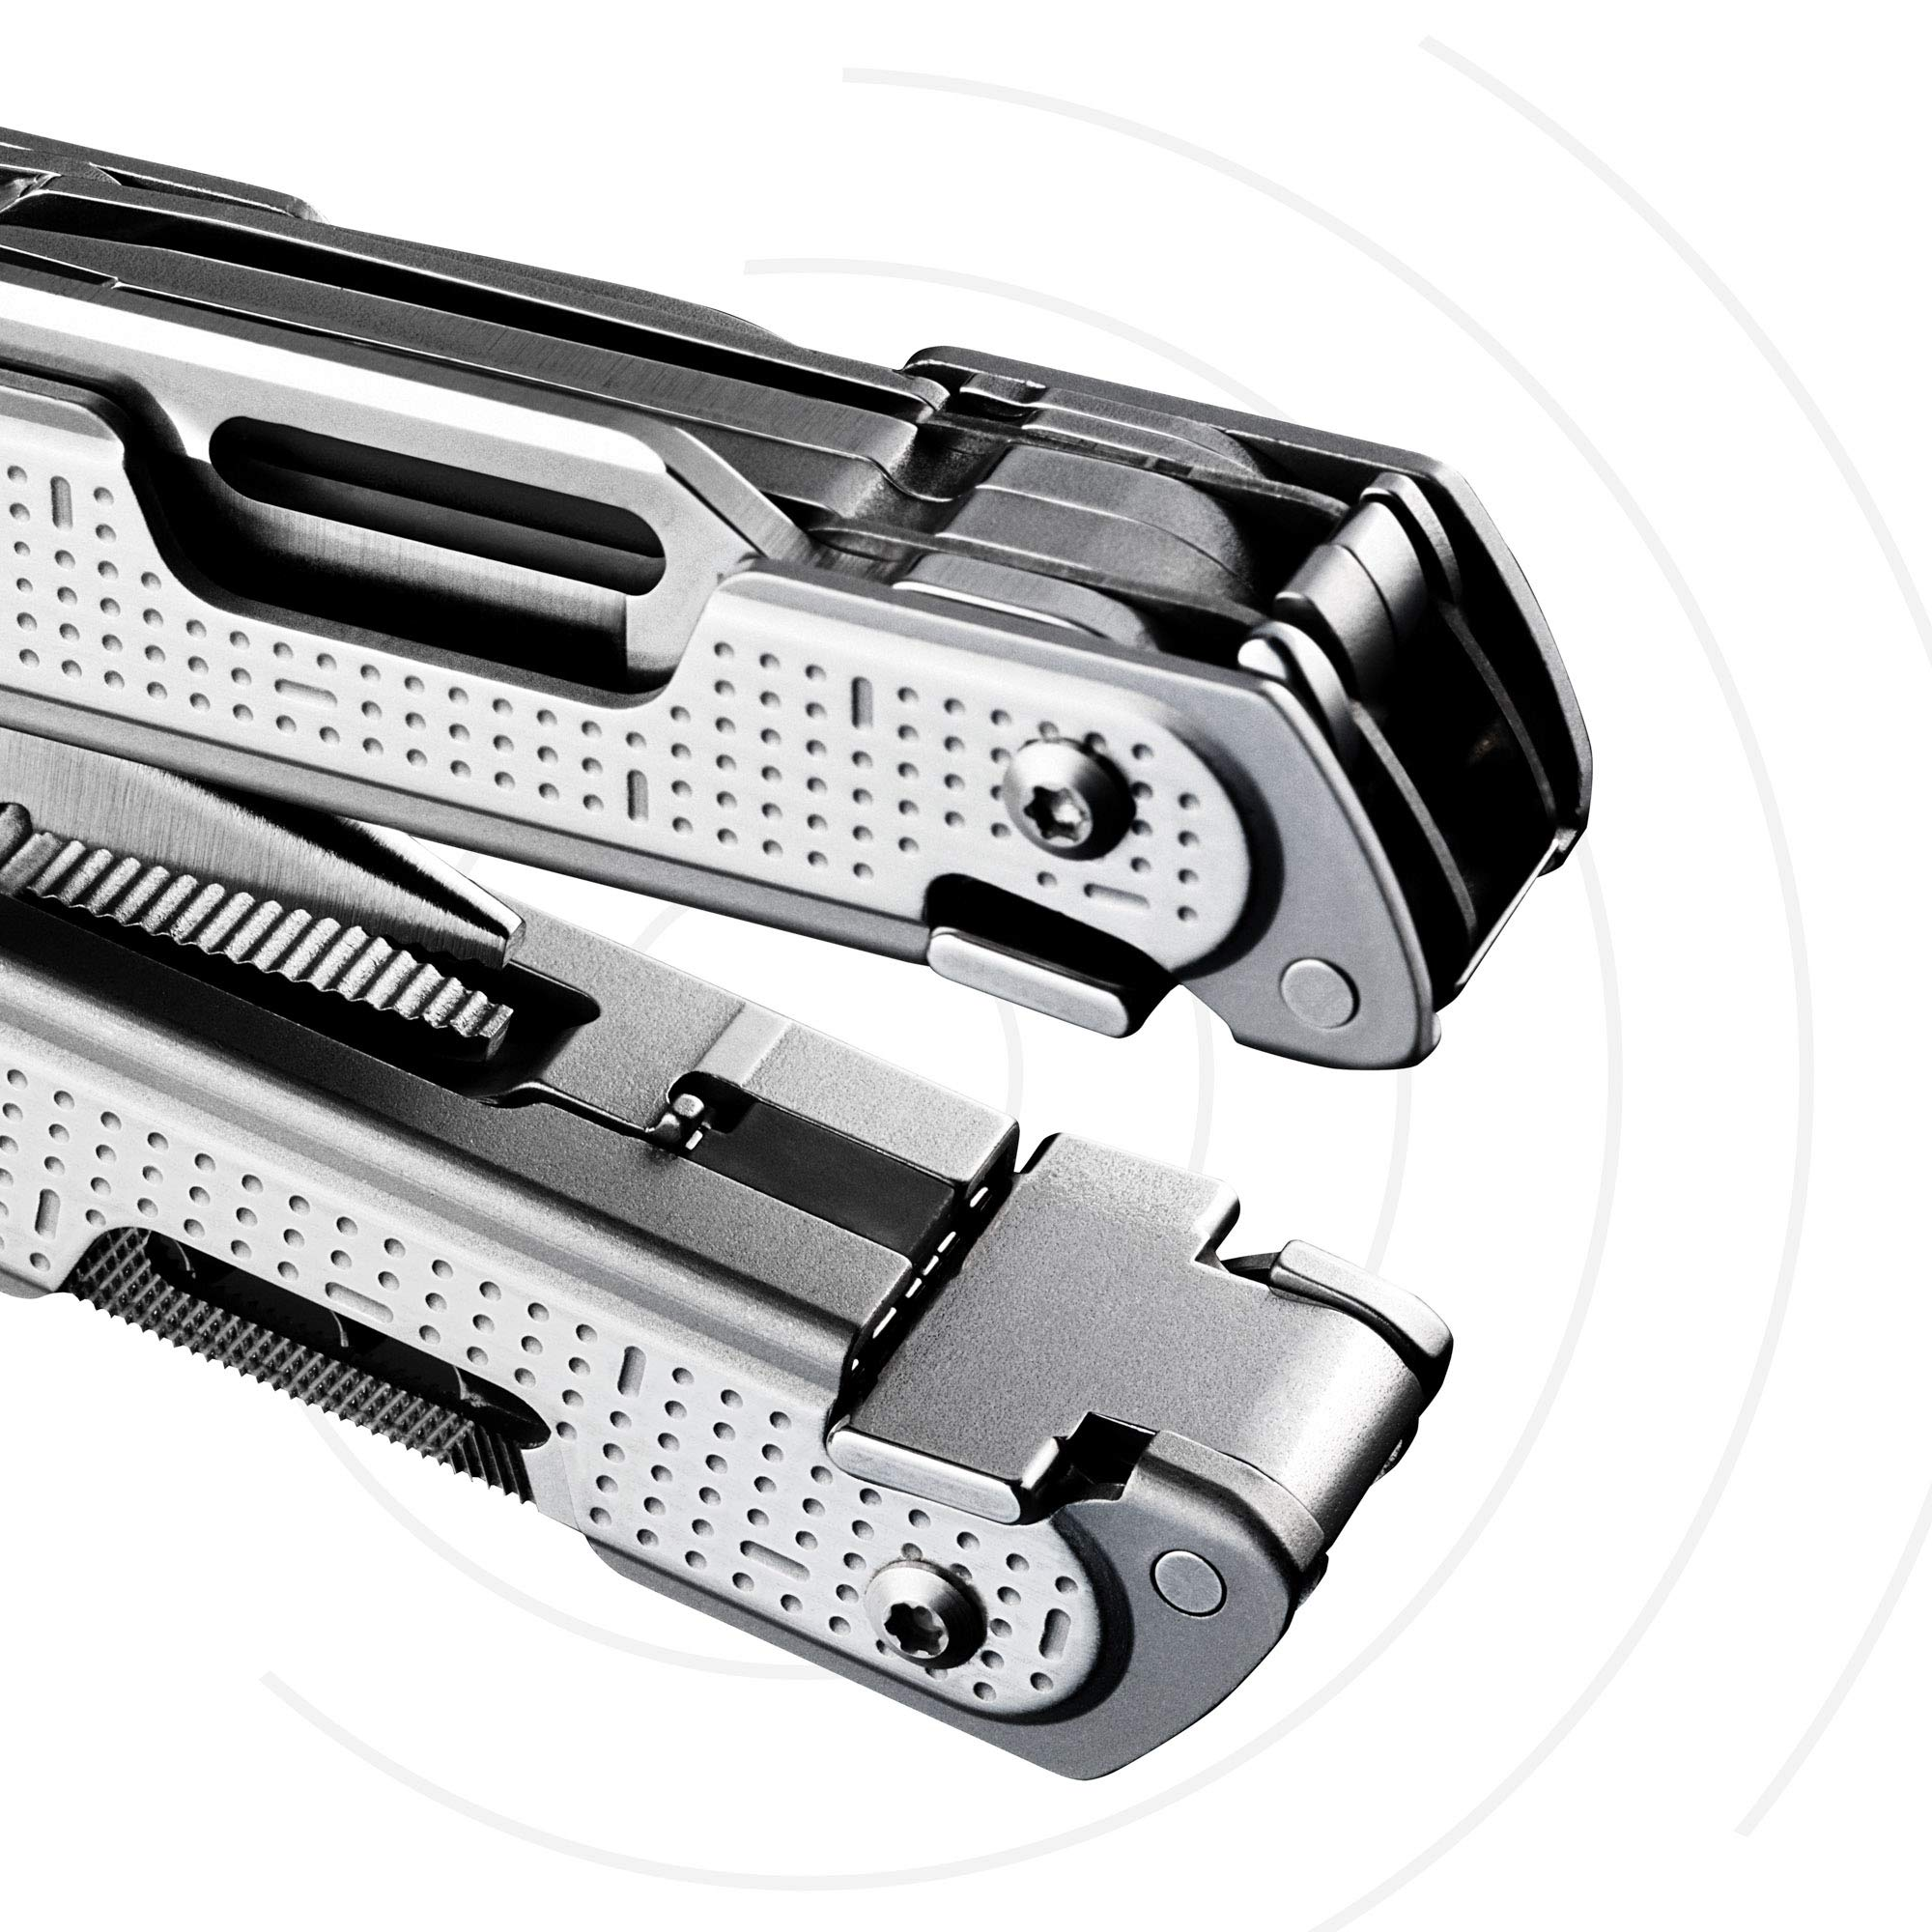 LEATHERMAN - FREE P4 Multitool with Magnetic Locking, One Hand Accessible Tools and Premium Nylon Sheath by LEATHERMAN (Image #7)